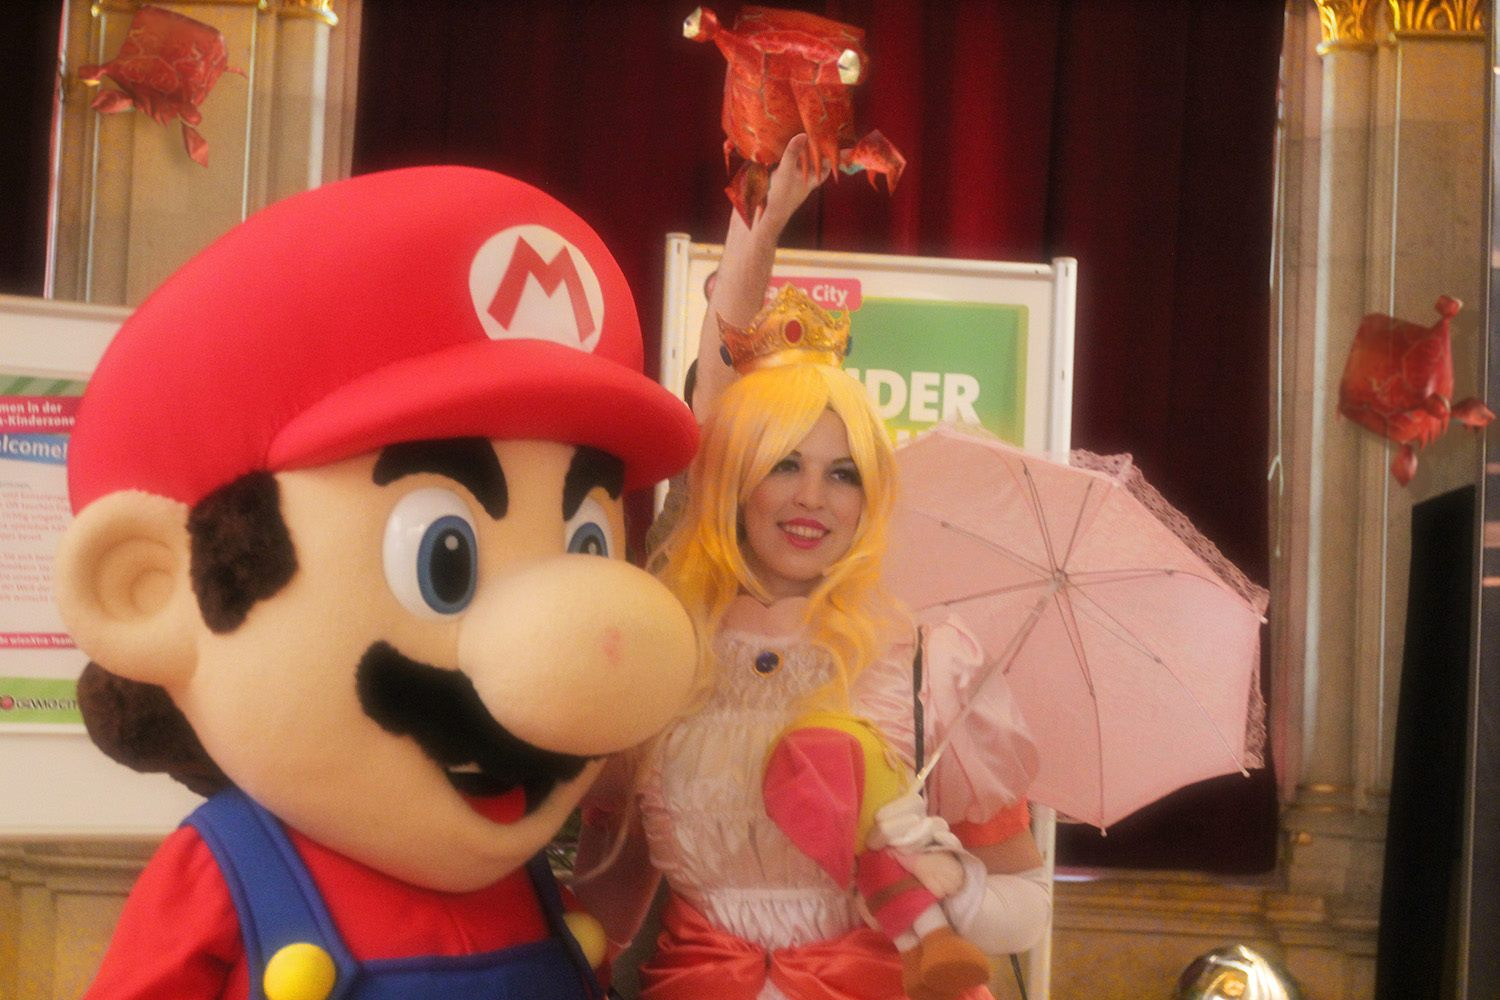 Princess Peach and Mario are about to get surprised!